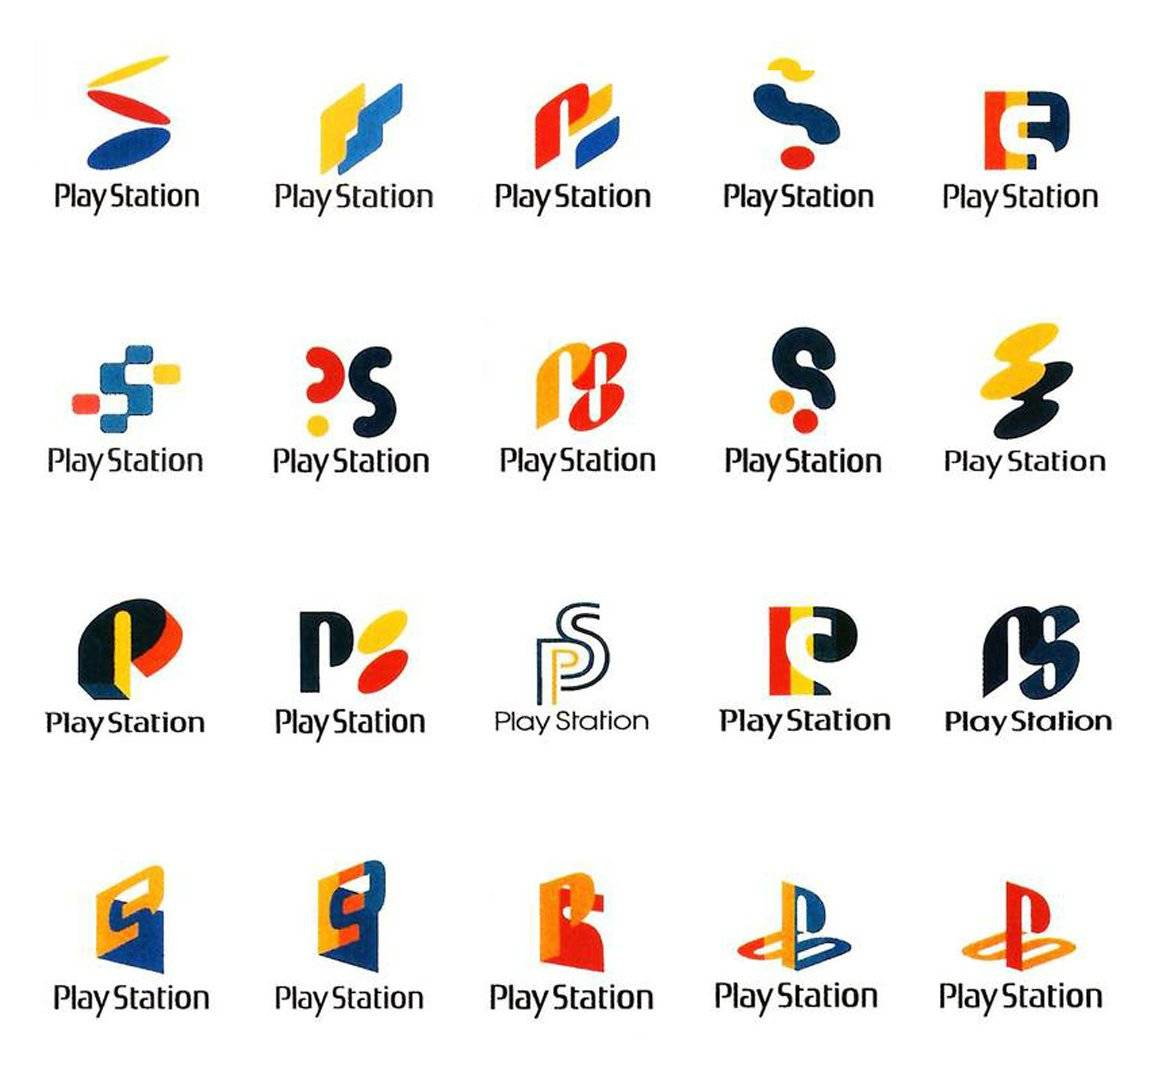 sony playstation 1 logo design ideas and concepts - Company Logo Design Ideas